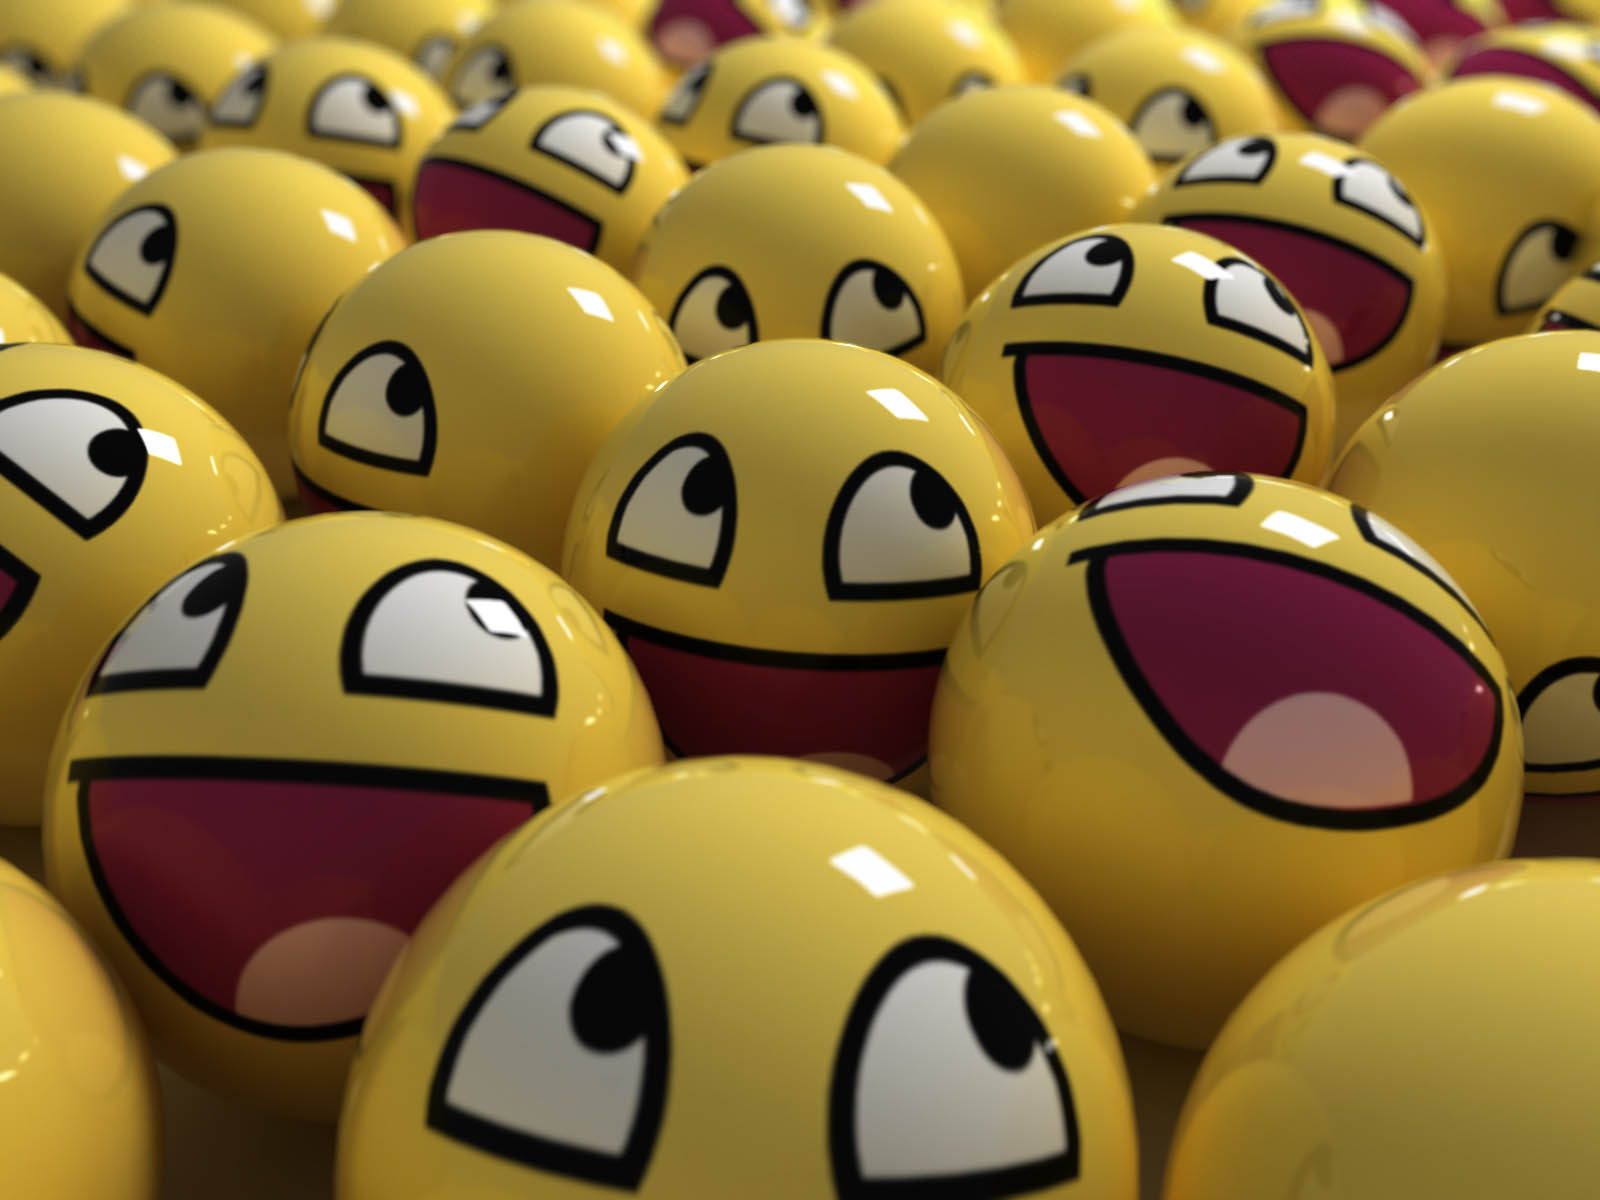 smilies   wallpaper pictures gallery